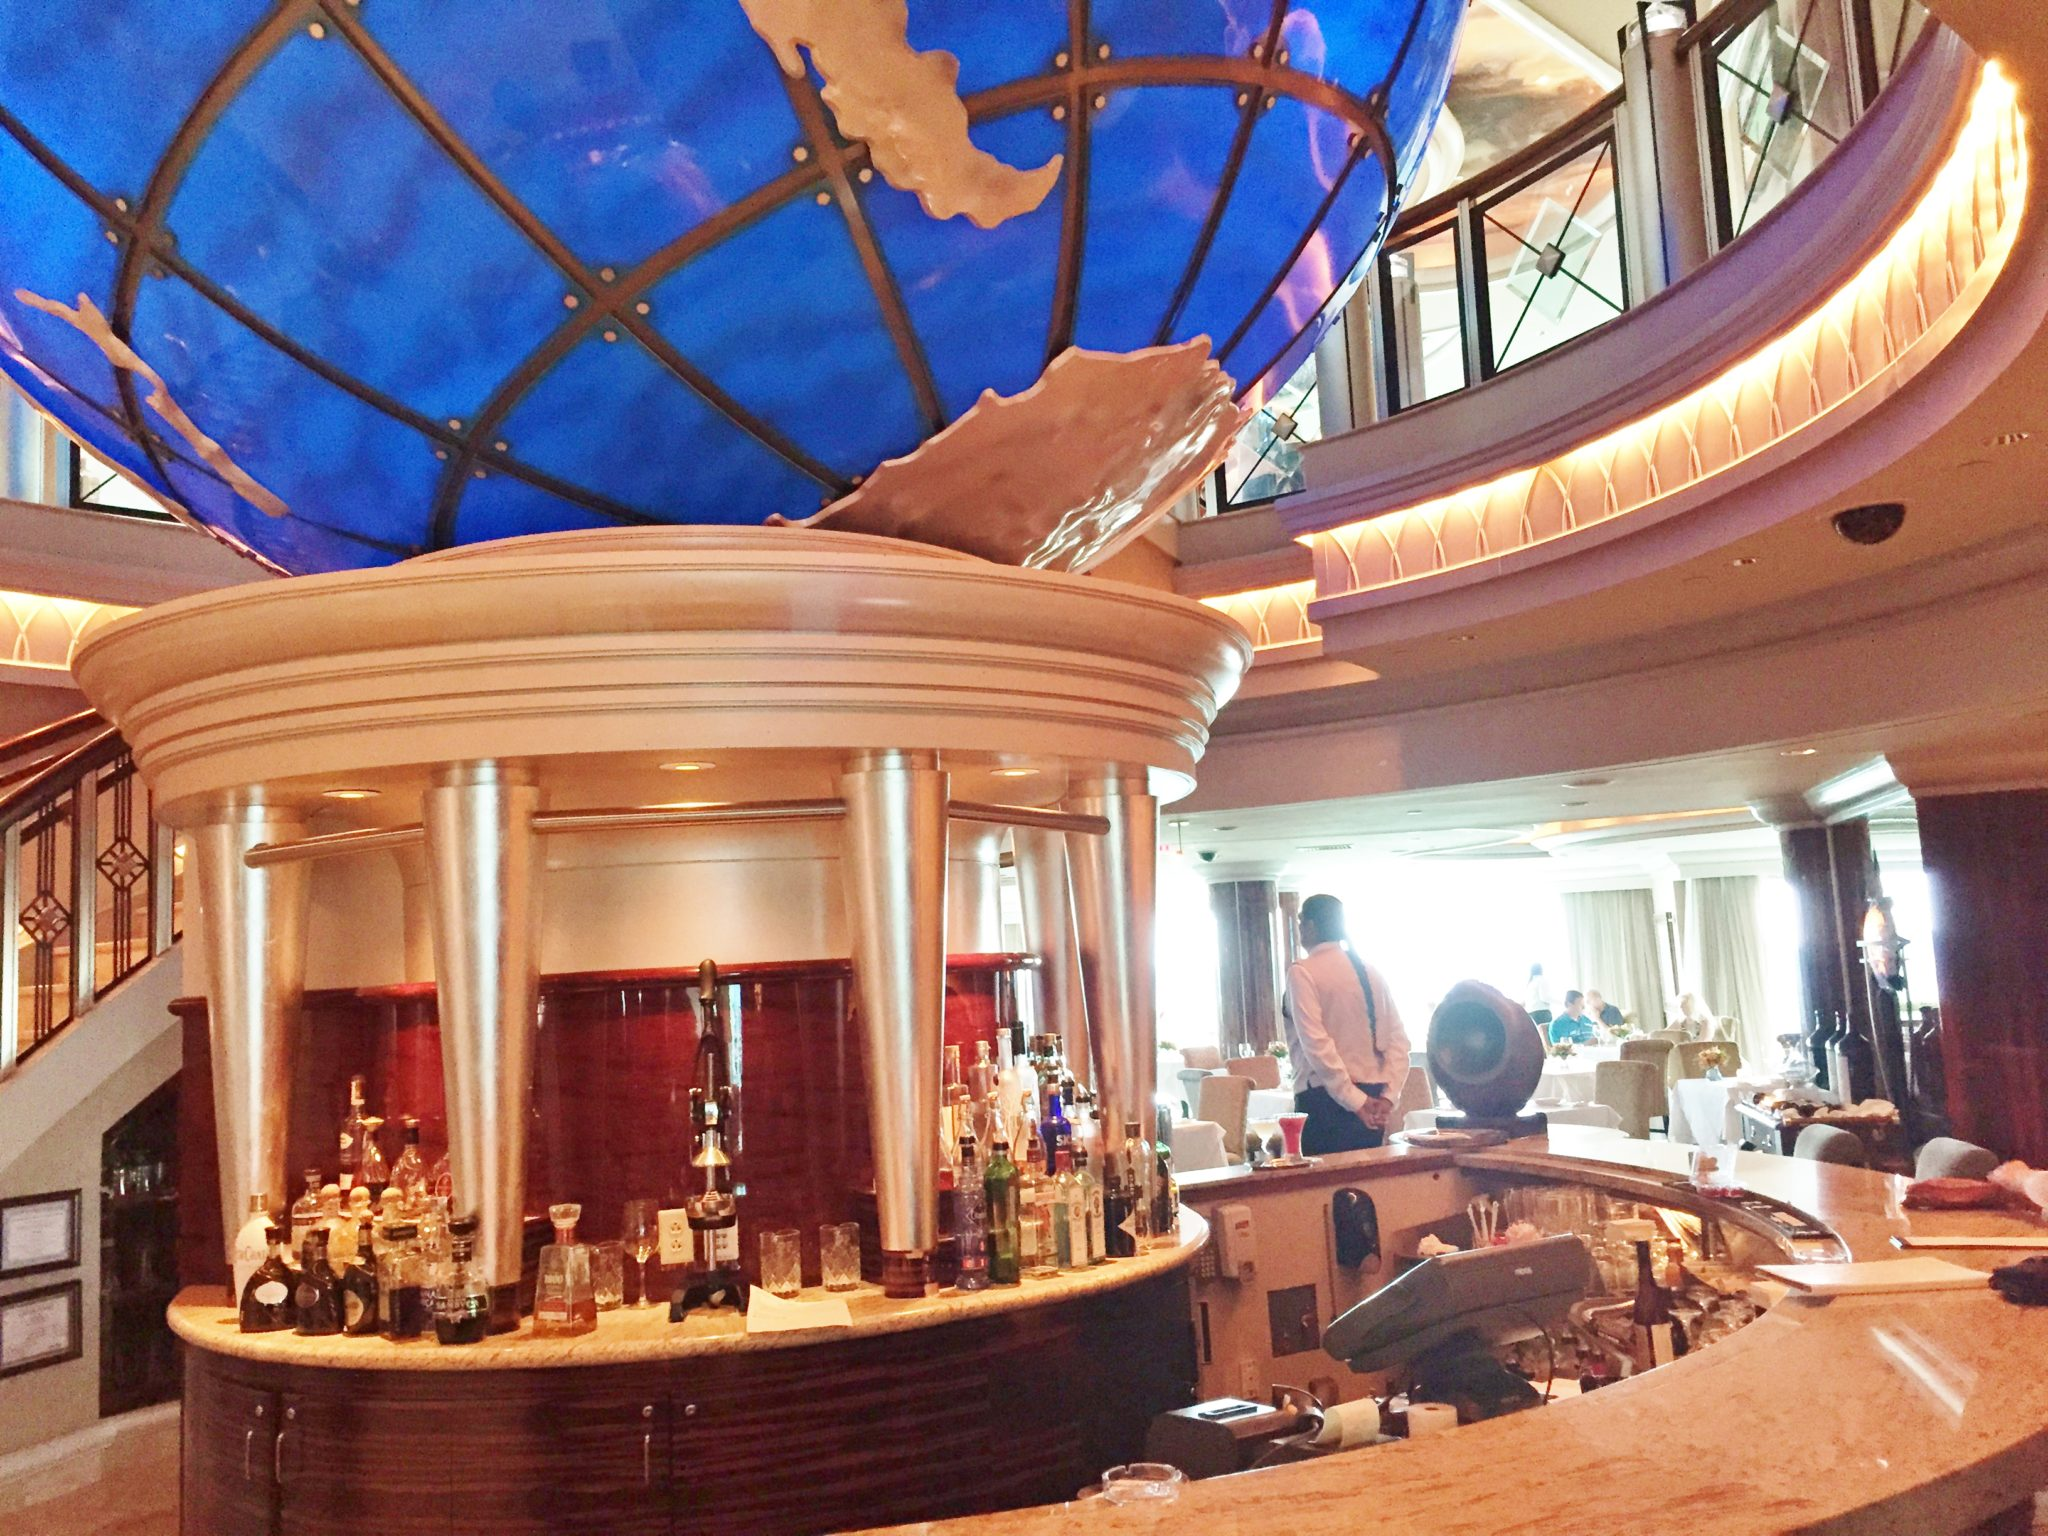 Enjoy Celebrity Radio's Review Paragon Restaurant Foxwoods…. When I found out I was visiting Foxwoods Resort I knew I'd be in for a culinary treat, […]